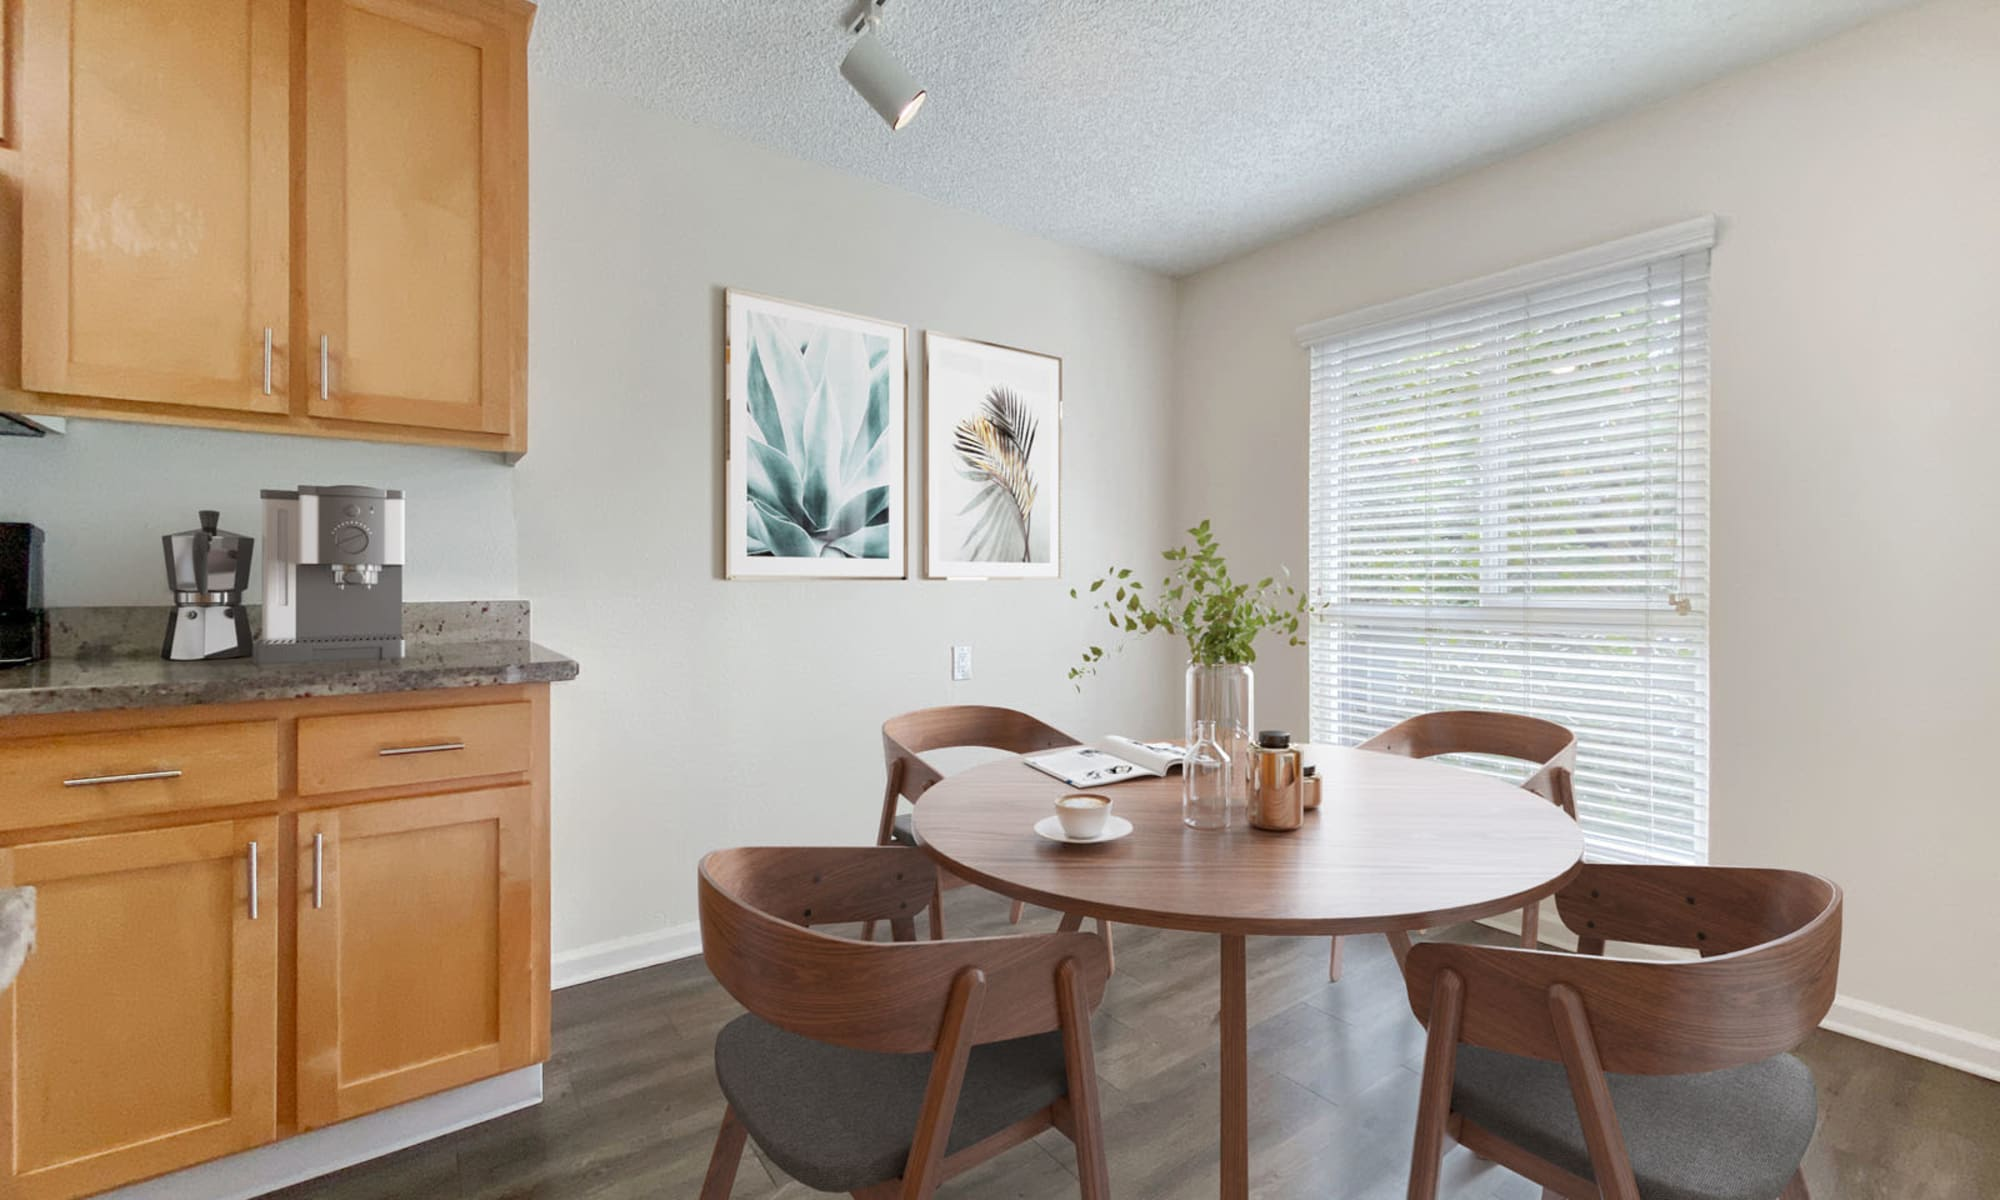 Dining area with a bay window near the kitchen in a model apartment at Pleasanton Glen Apartment Homes in Pleasanton, California